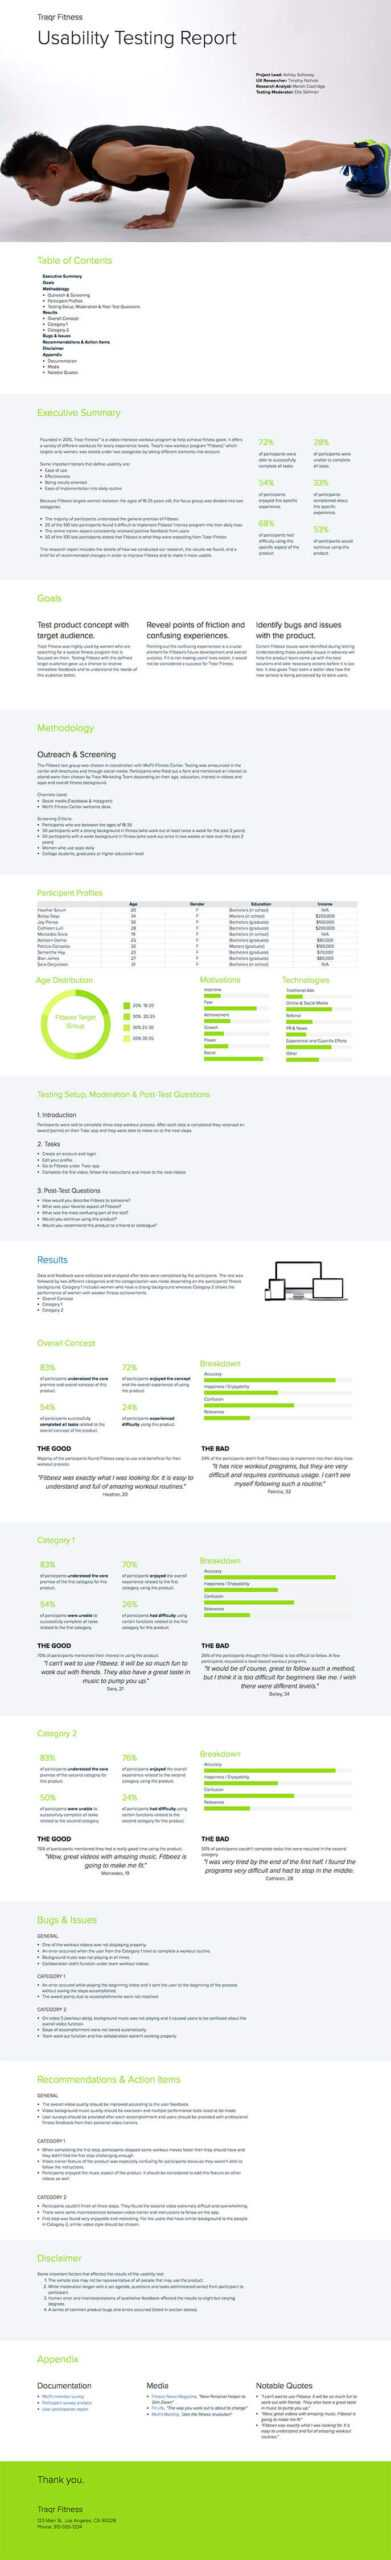 How To Write A Usability Testing Report (With Samples)   Xtensio Pertaining To Usability Test Report Template